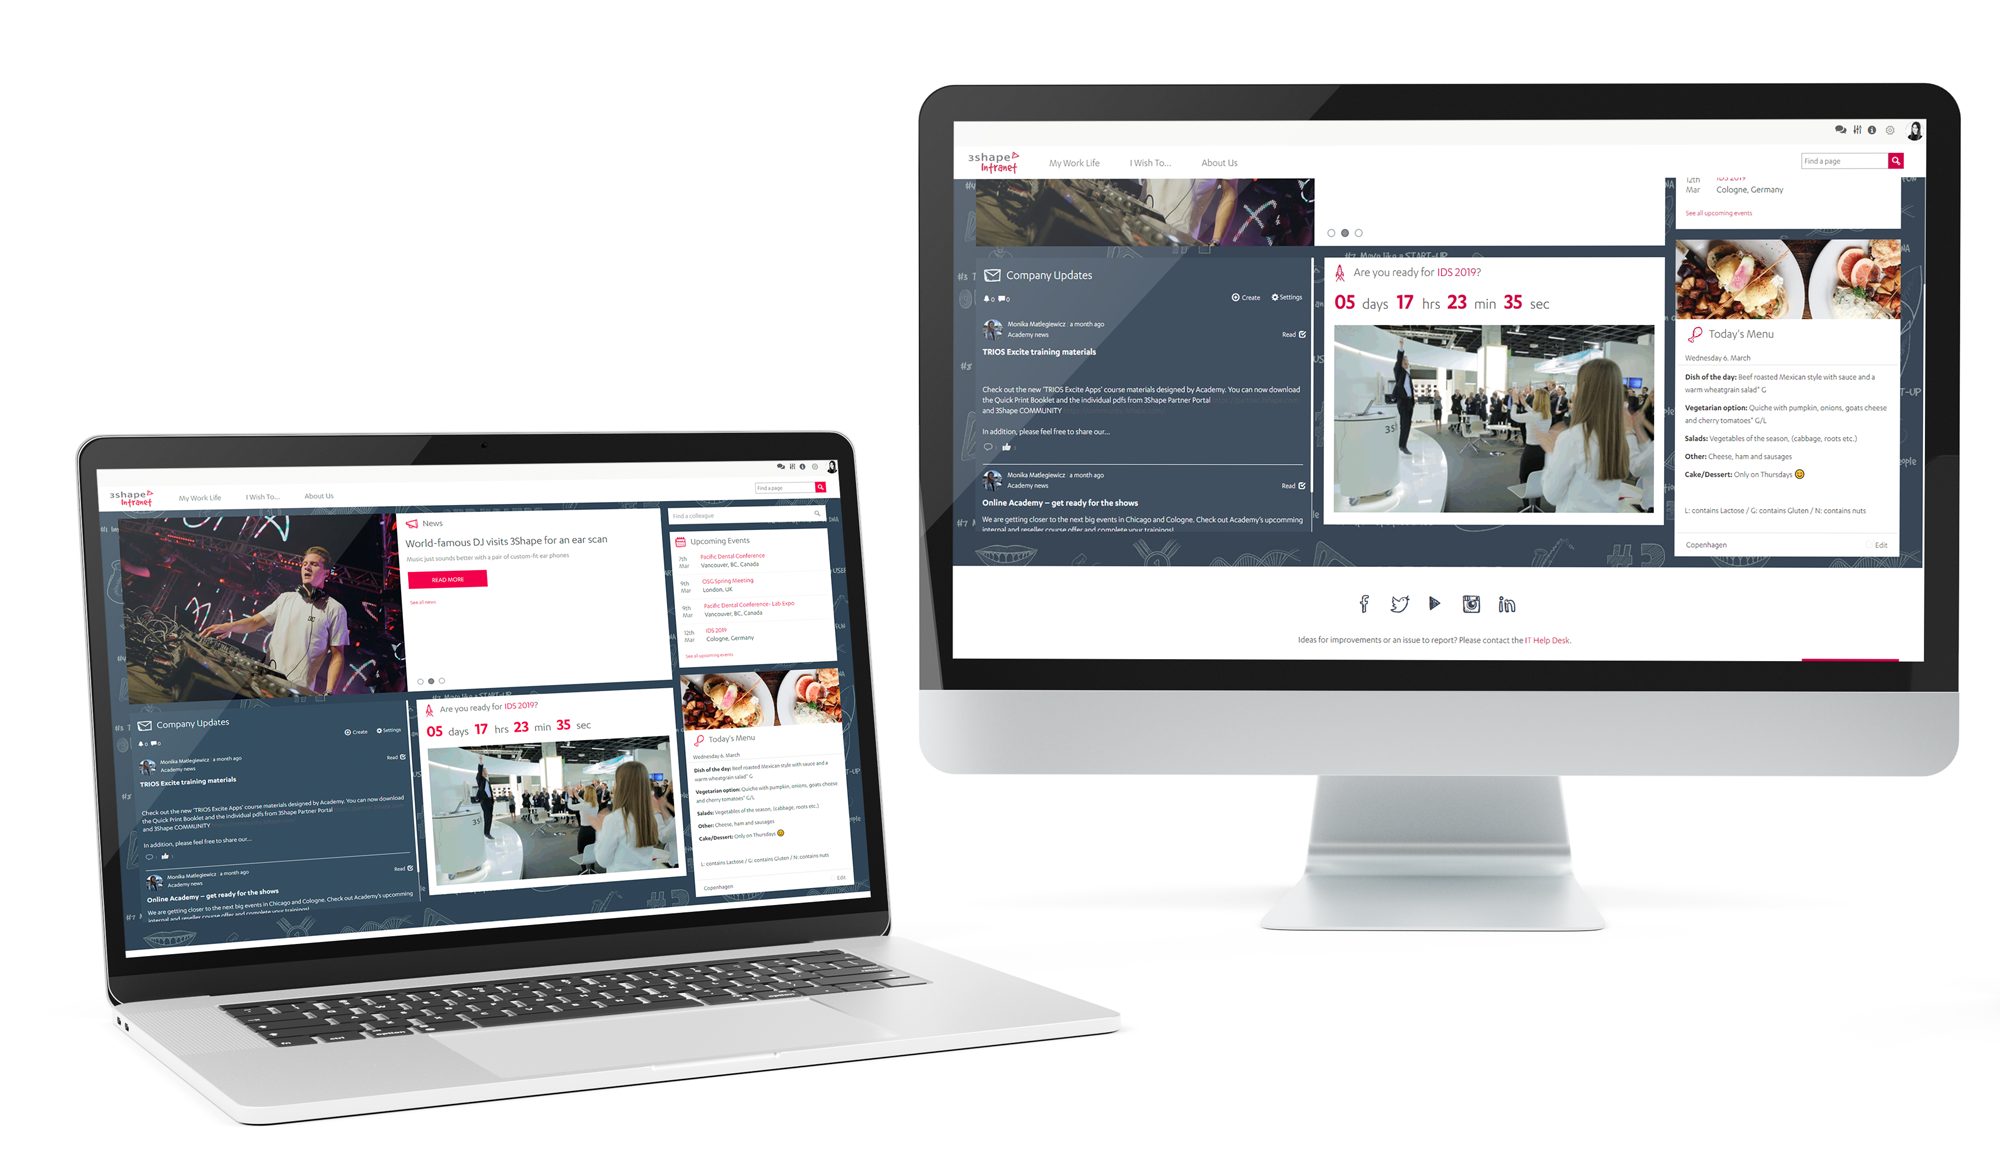 We implemented an intranet for 3Shape, a health and dental